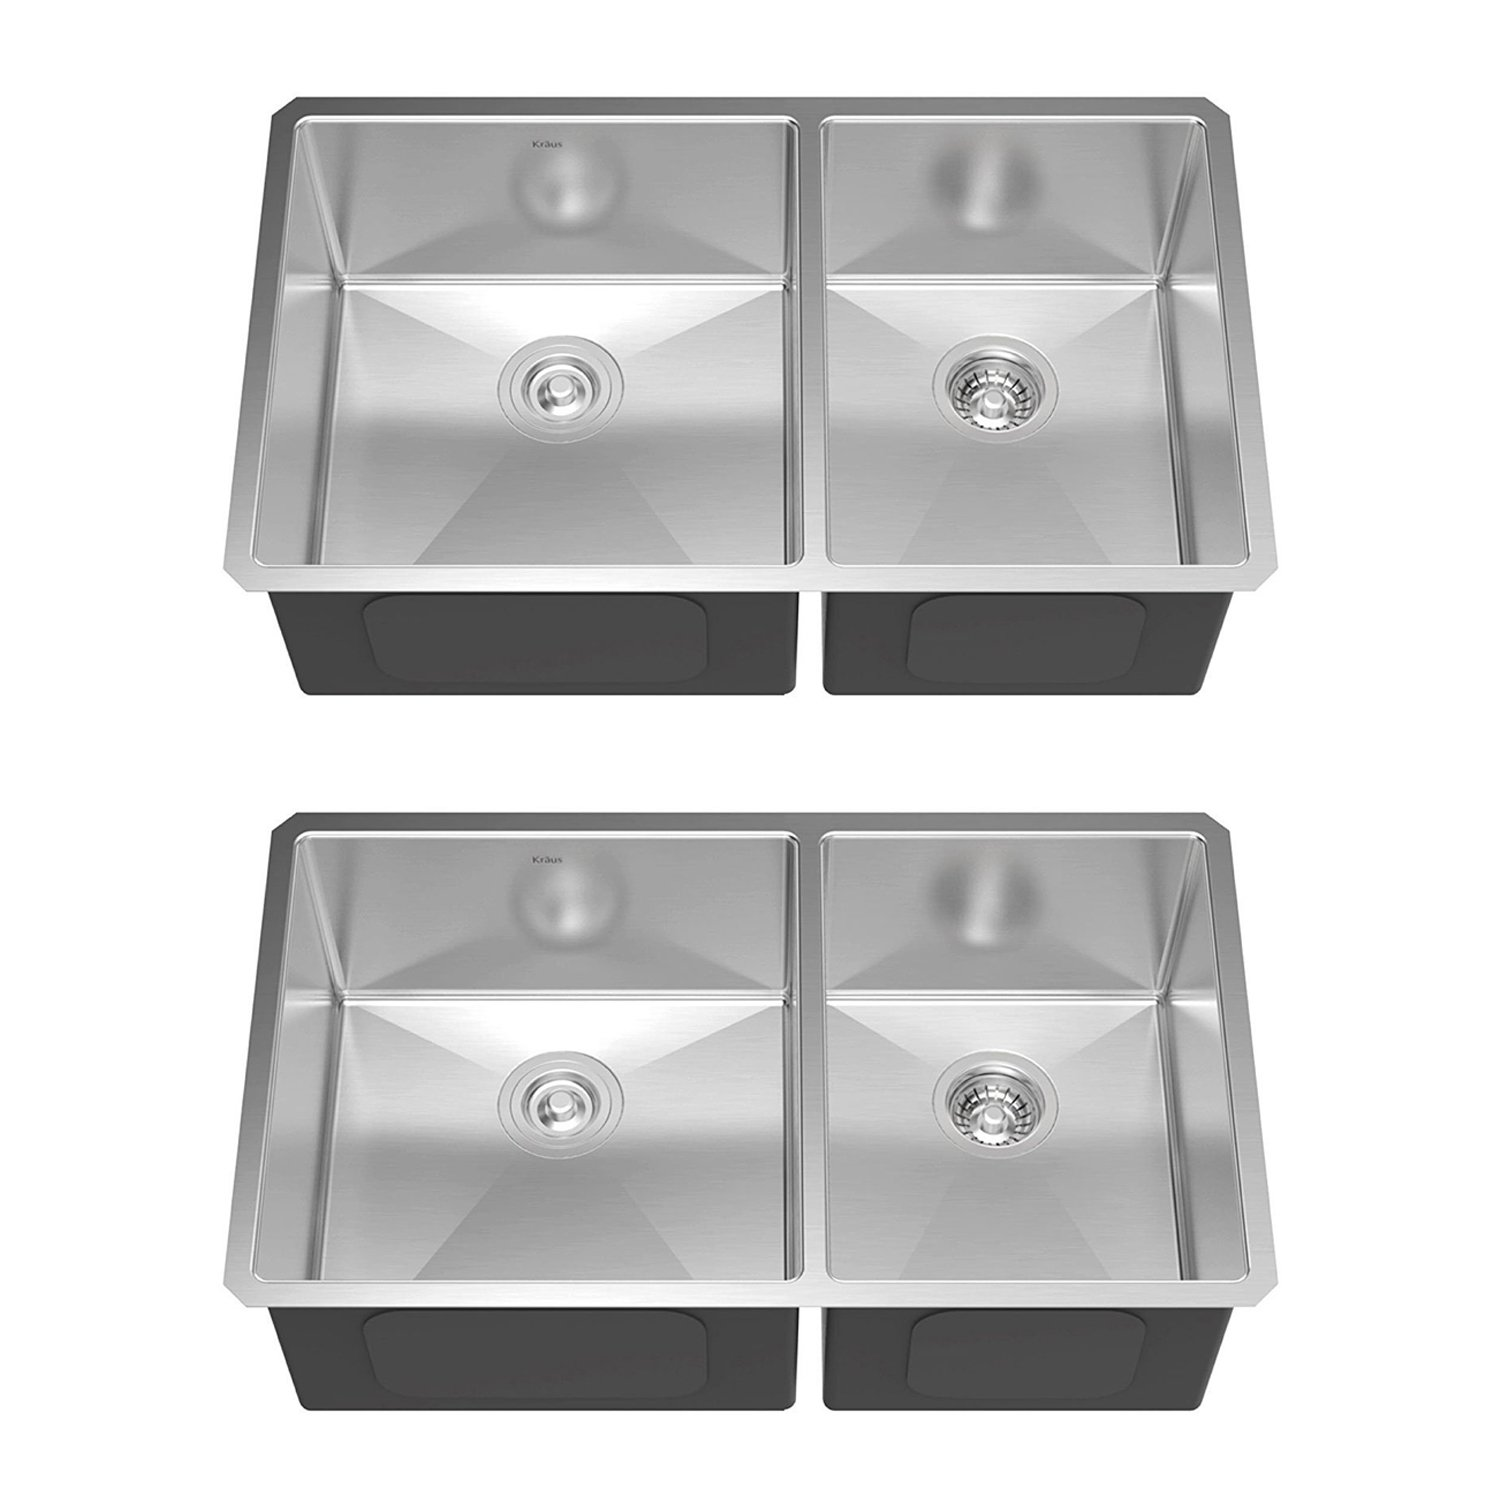 47bfc13bef Kraus 33 Inch Undermount 60/40 Double Stainless Steel Kitchen Sink (2 Pack)